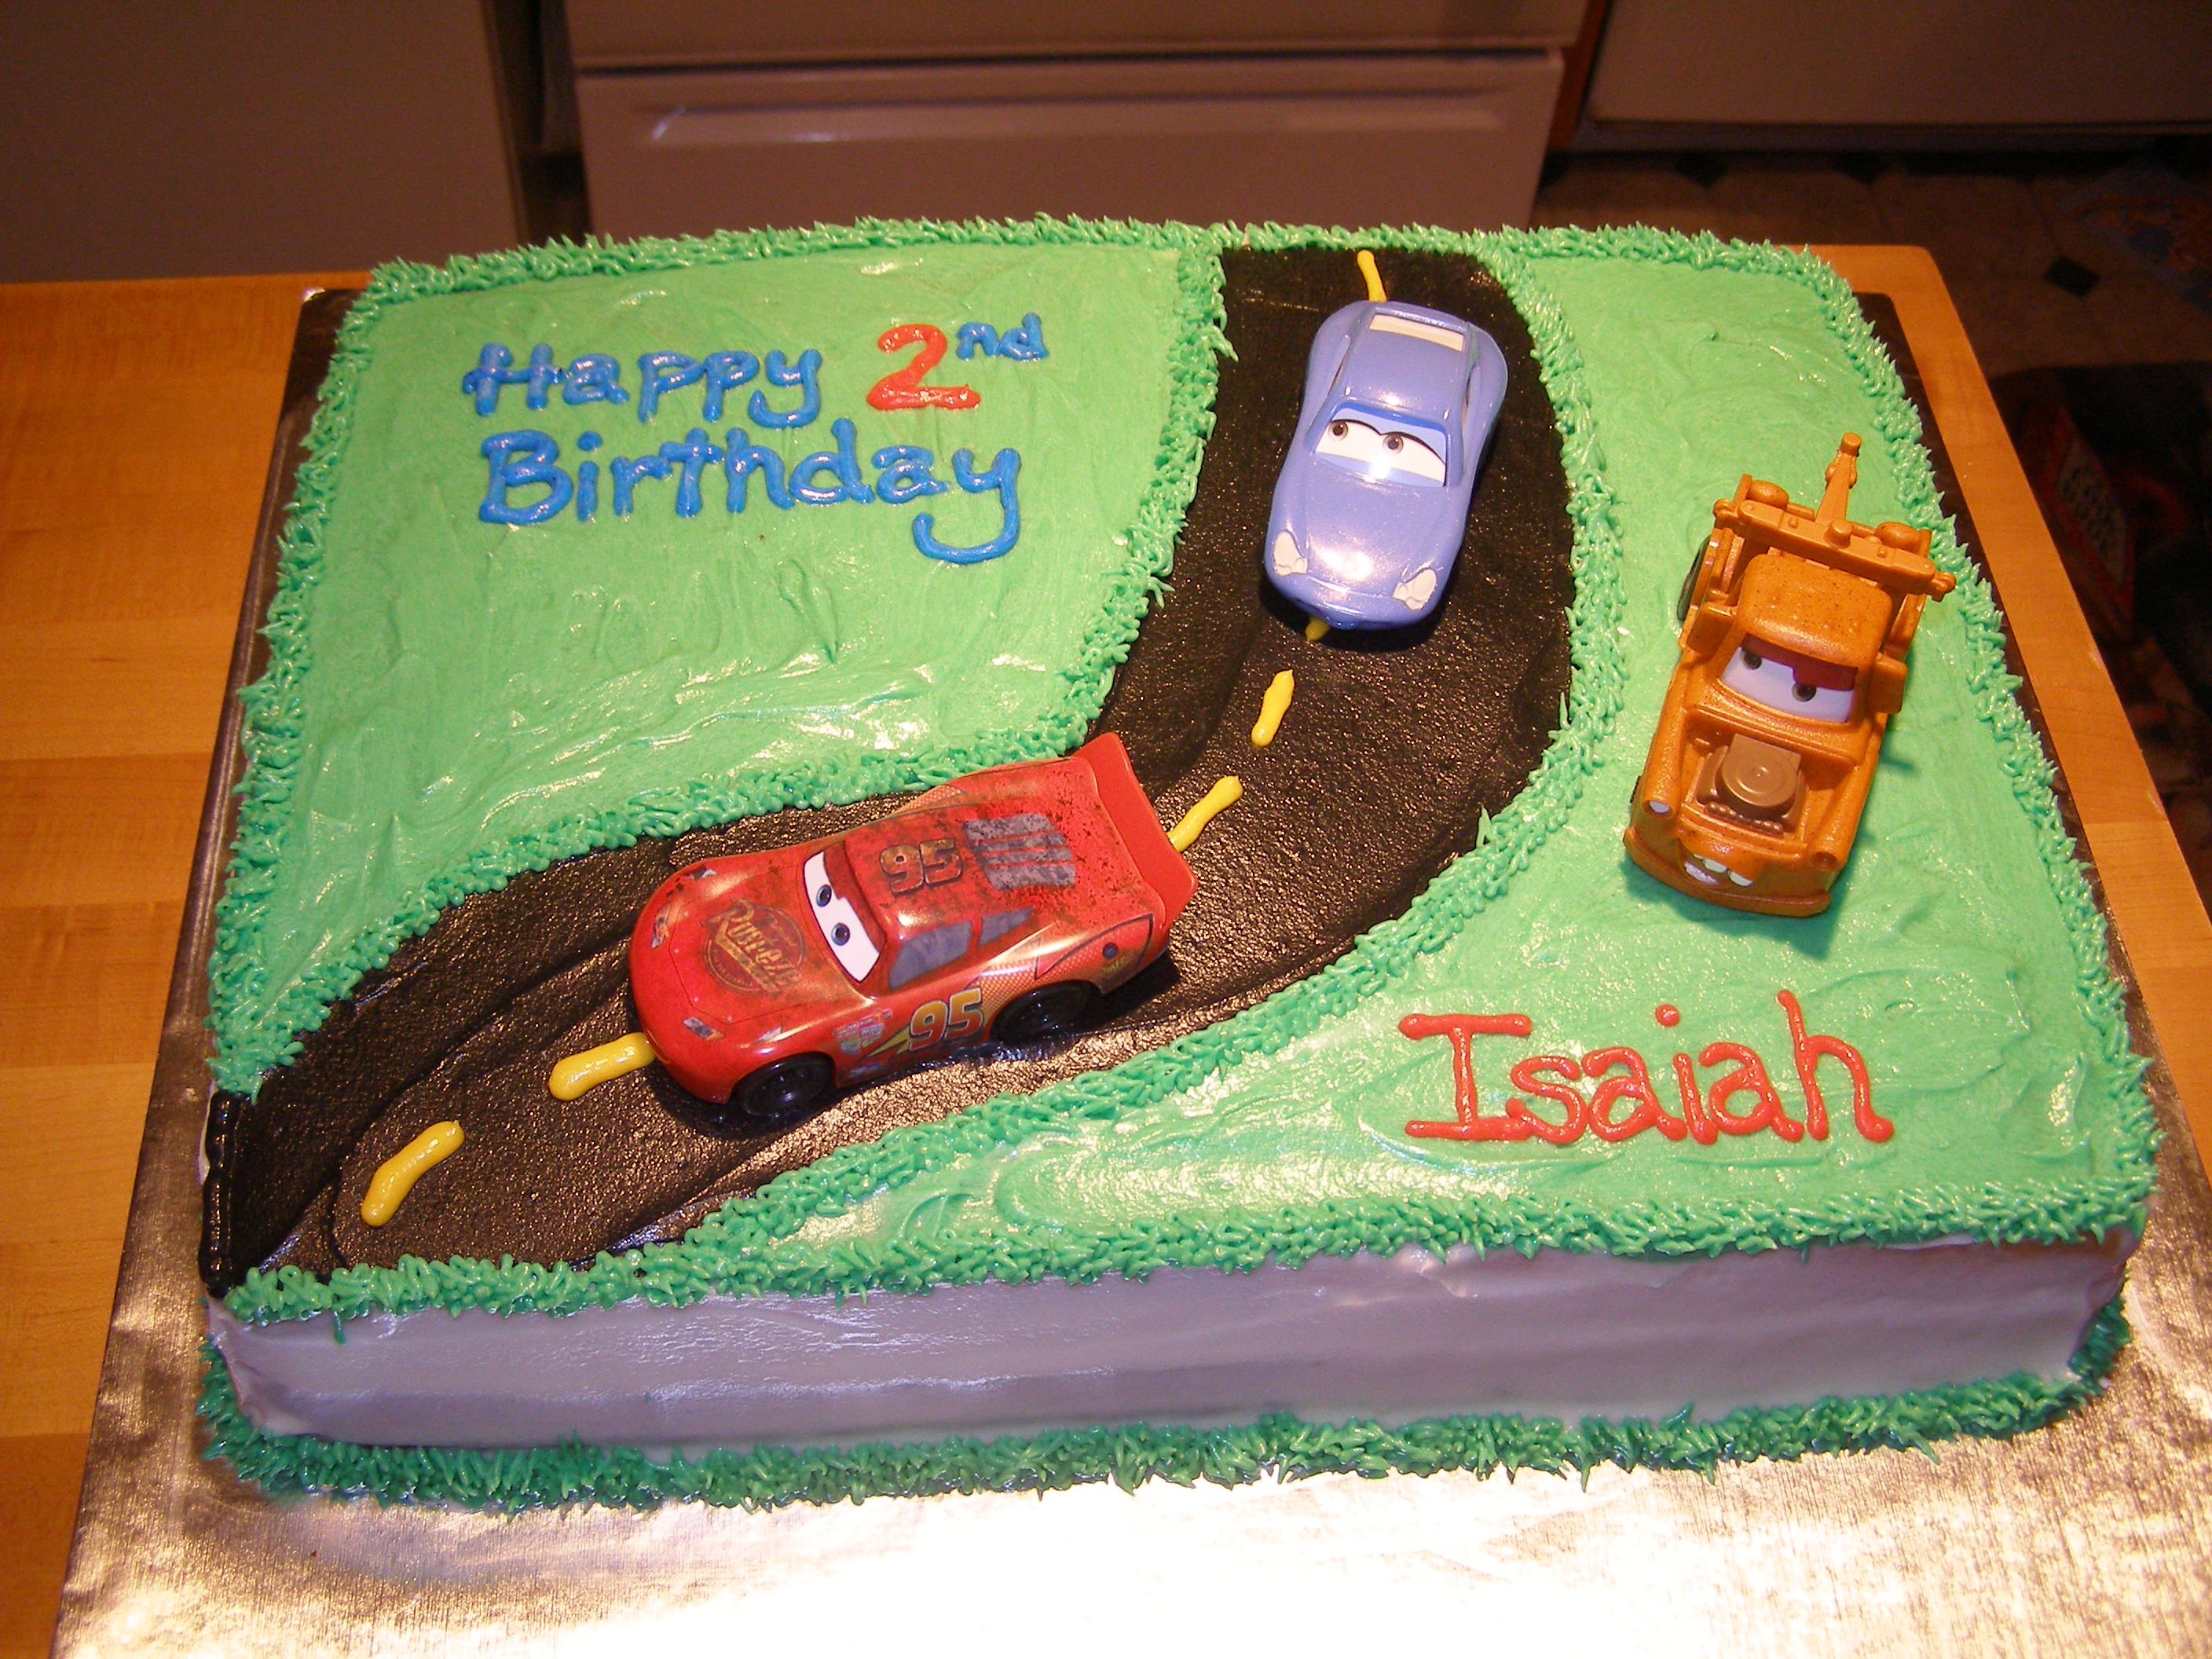 Place the 8 square cake on one side of the cake. Cars Cakes Decoration Ideas Little Birthday Cakes